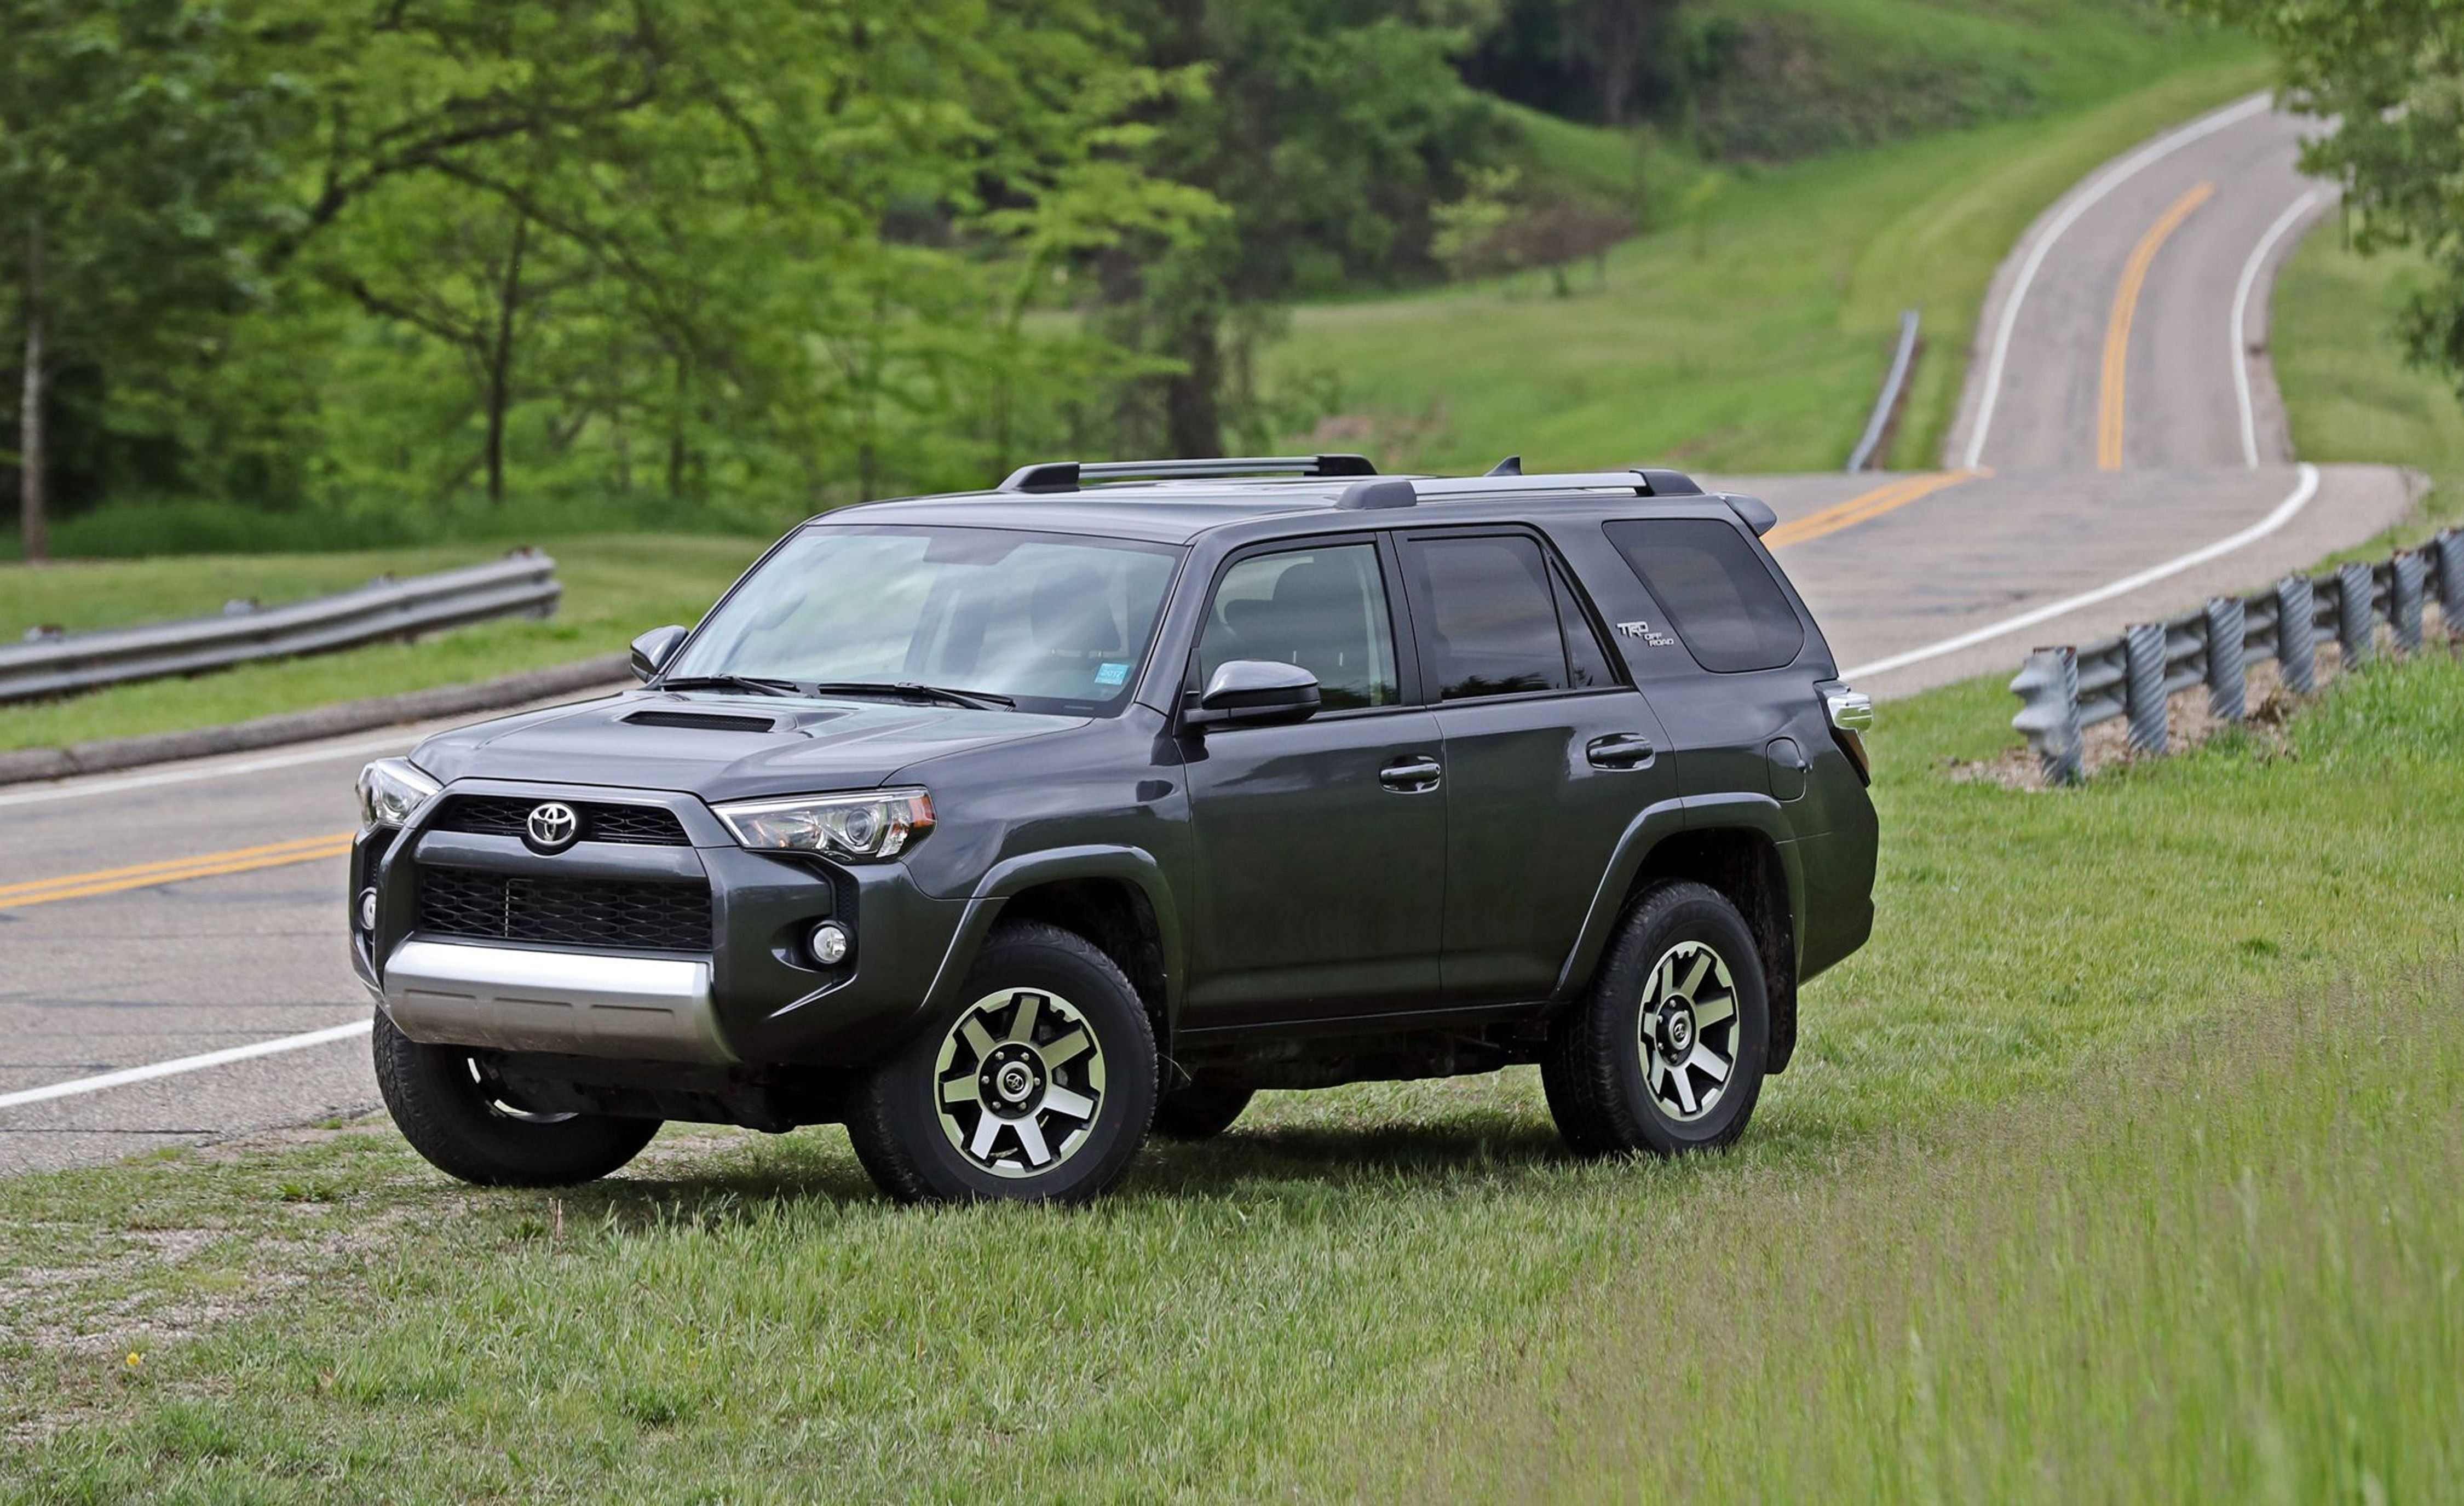 The 2020 Toyota 4runner Concept and Review (With images